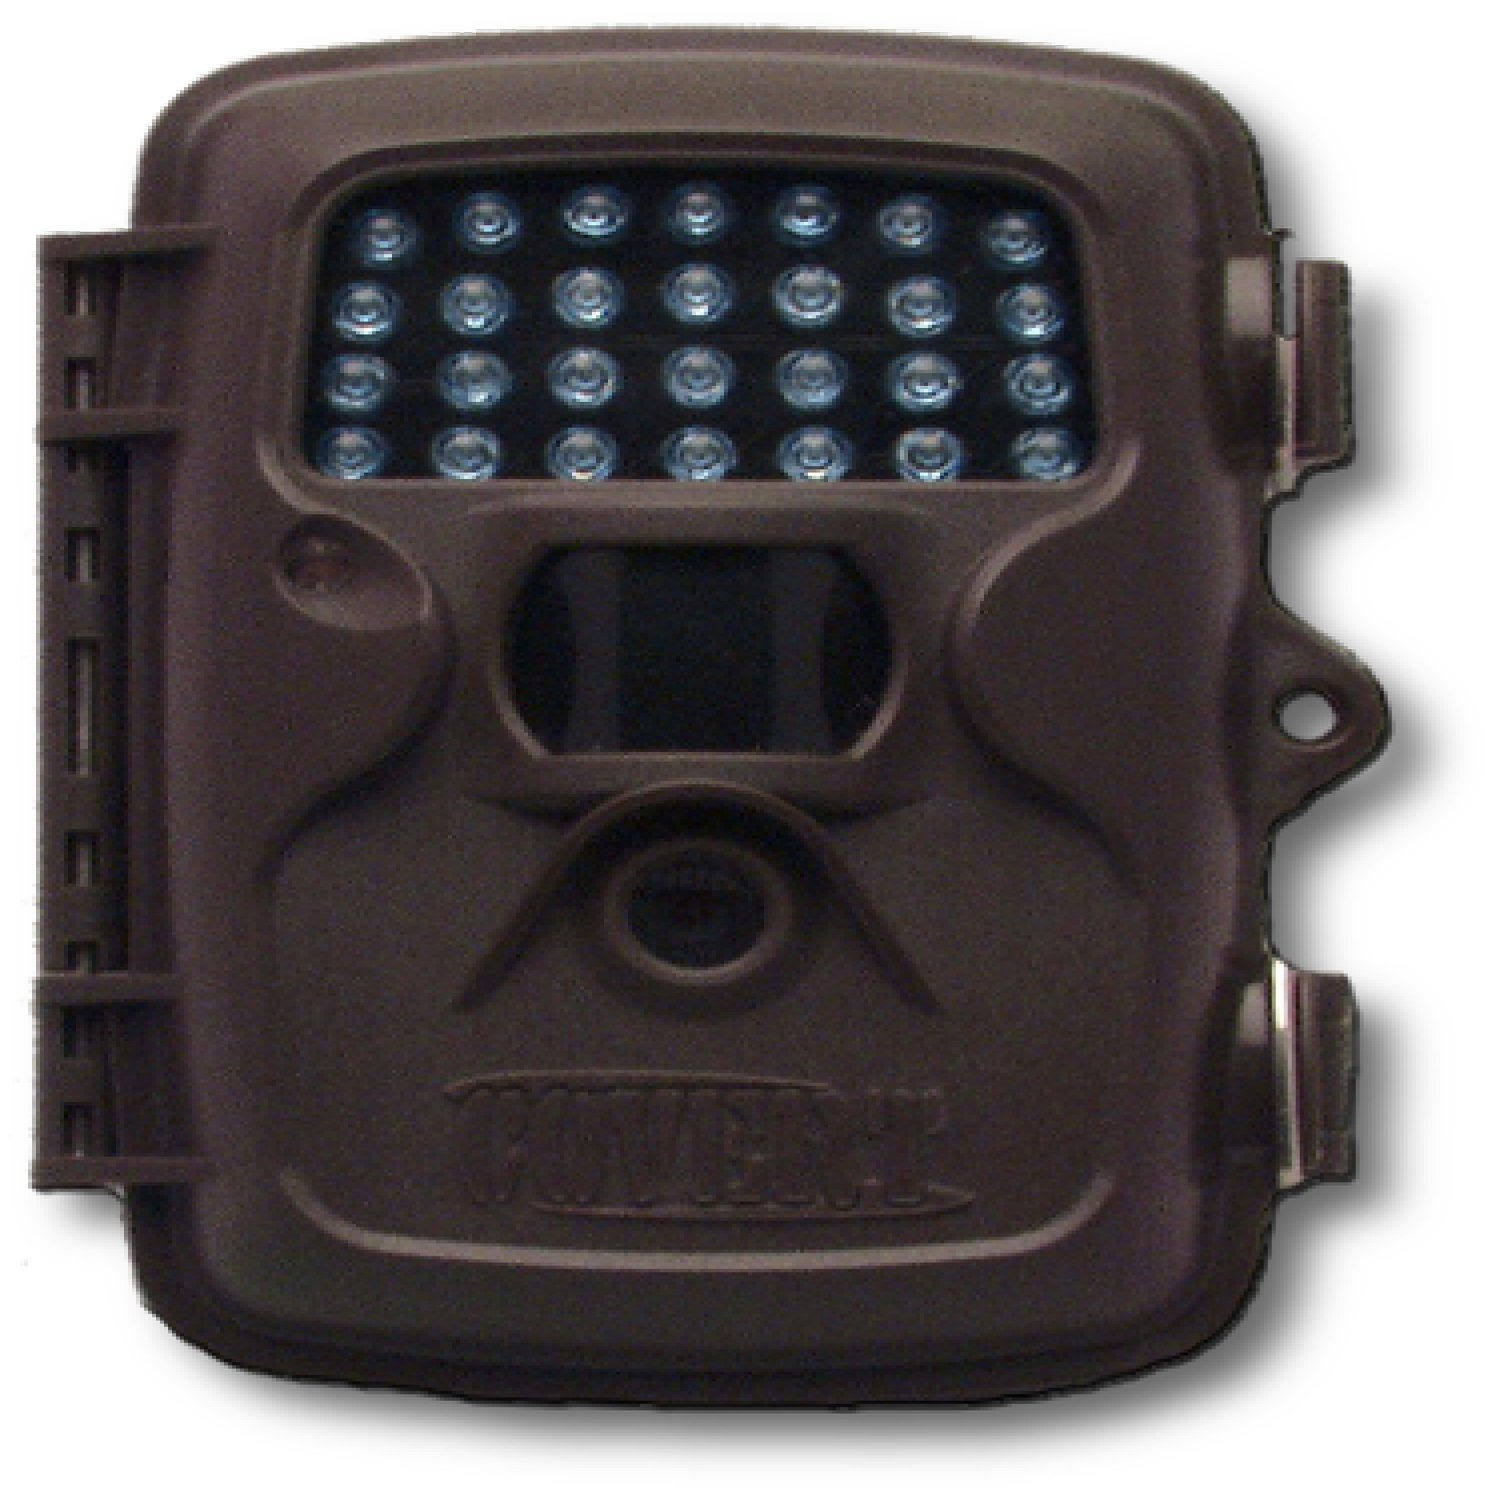 Amazon.com : 3002984 Covert Mpe6 Trail Camera Solid Brown : Sports ...